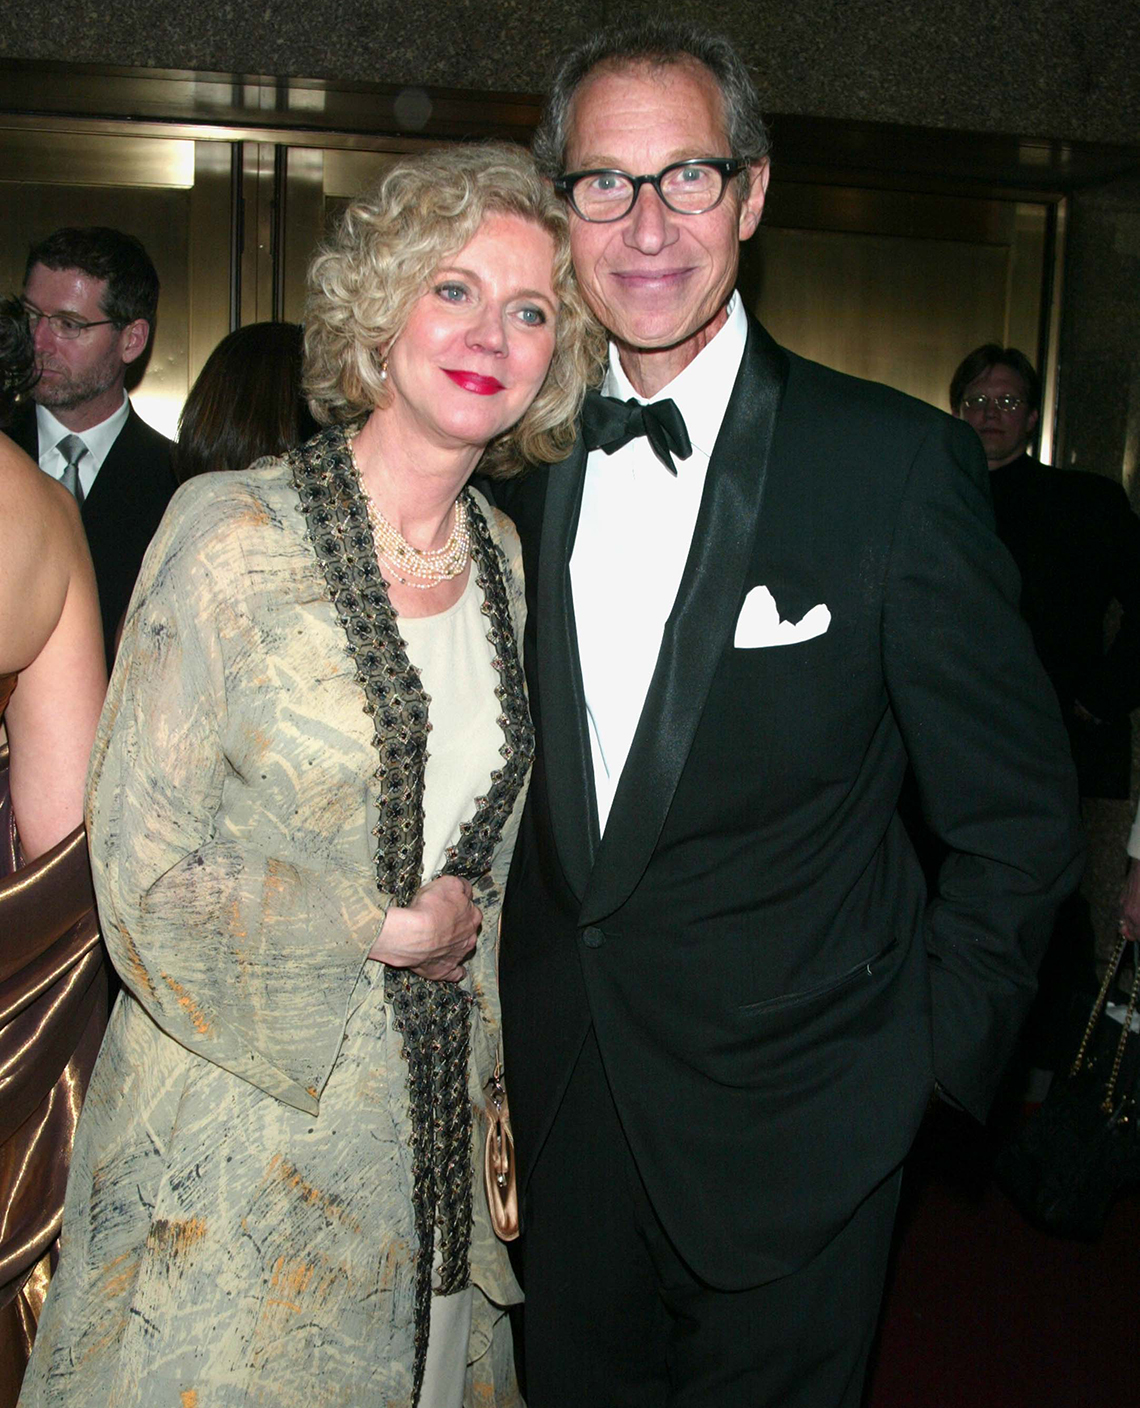 Blythe Danner with her arm around Bruce Paltrow.